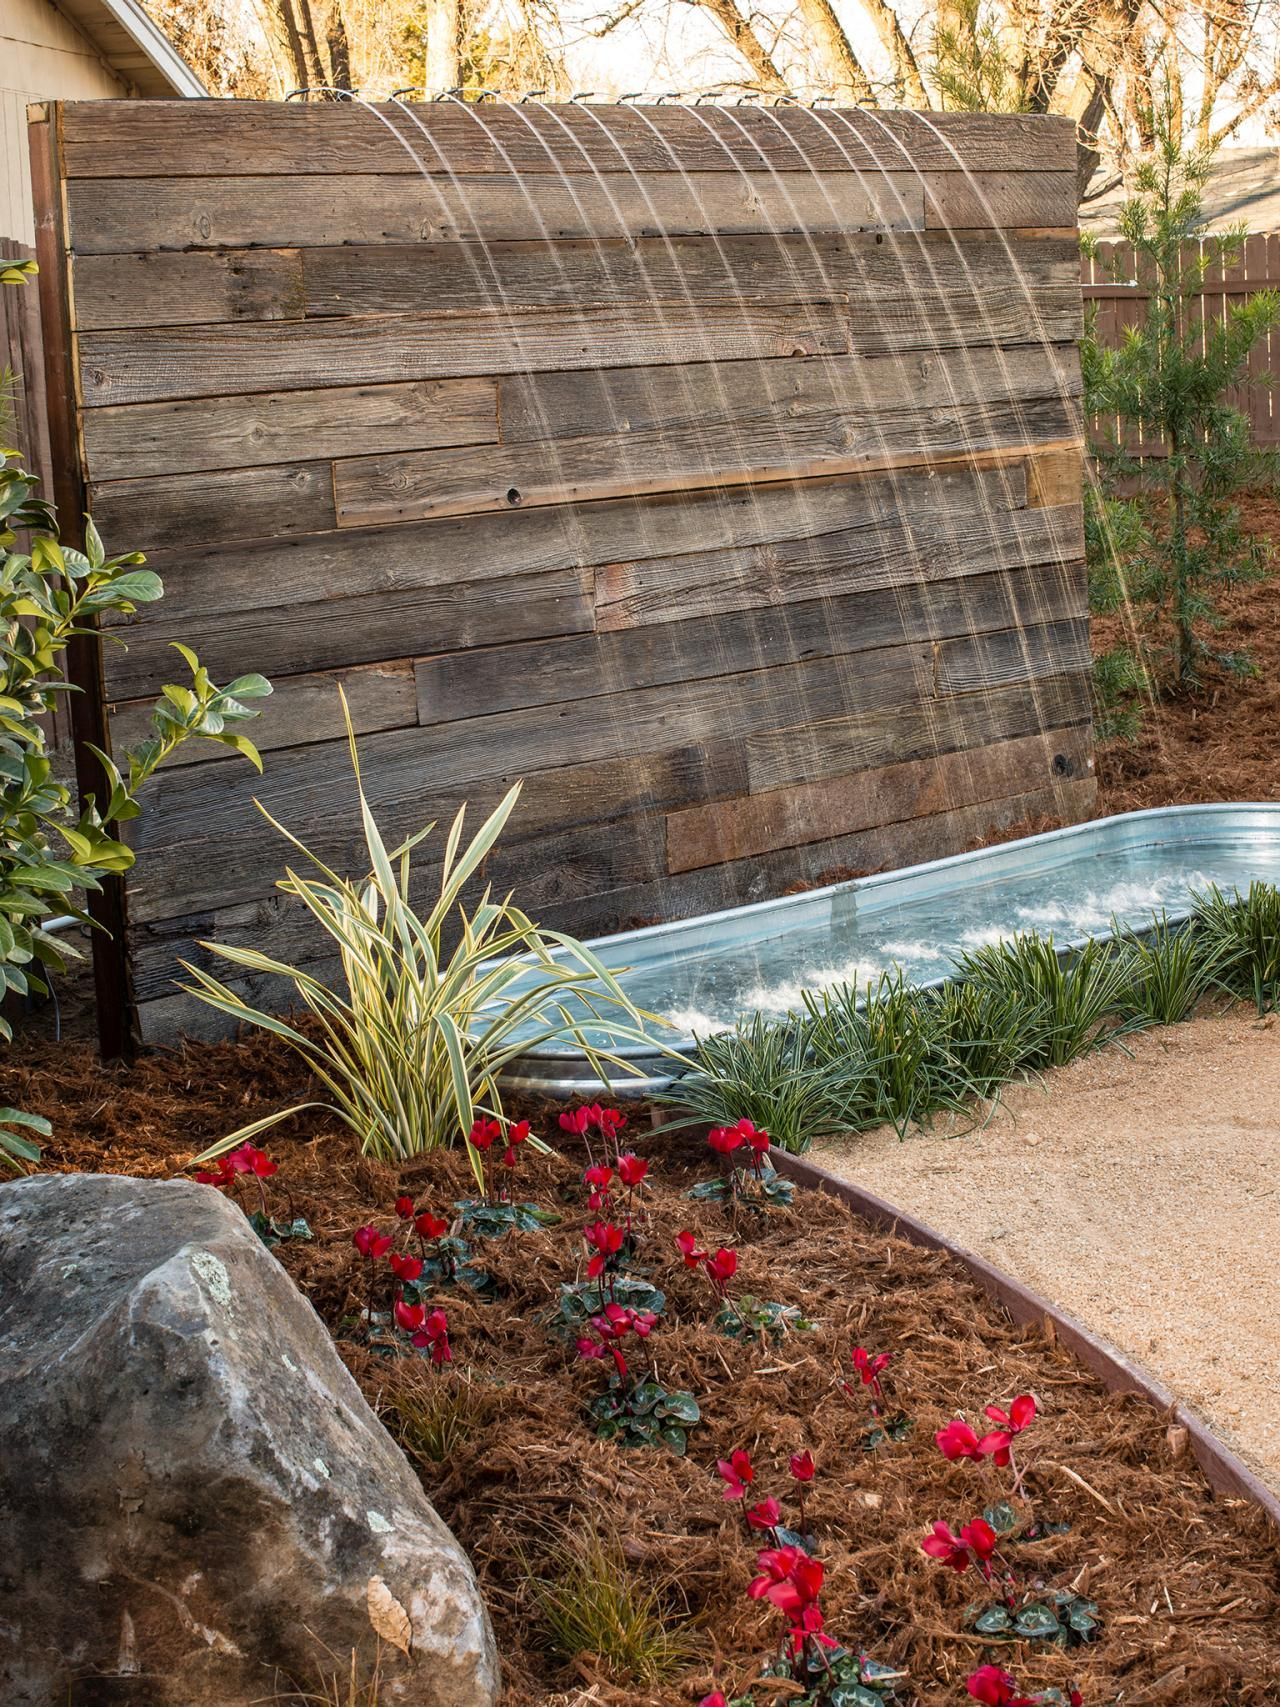 Diy water feature wall - Privacy Screen And Water Feature I Like The Wood Plank Look But I Have All That Stone Left Over I M Thinking A Stone Wall Flanked By A Wood Wall